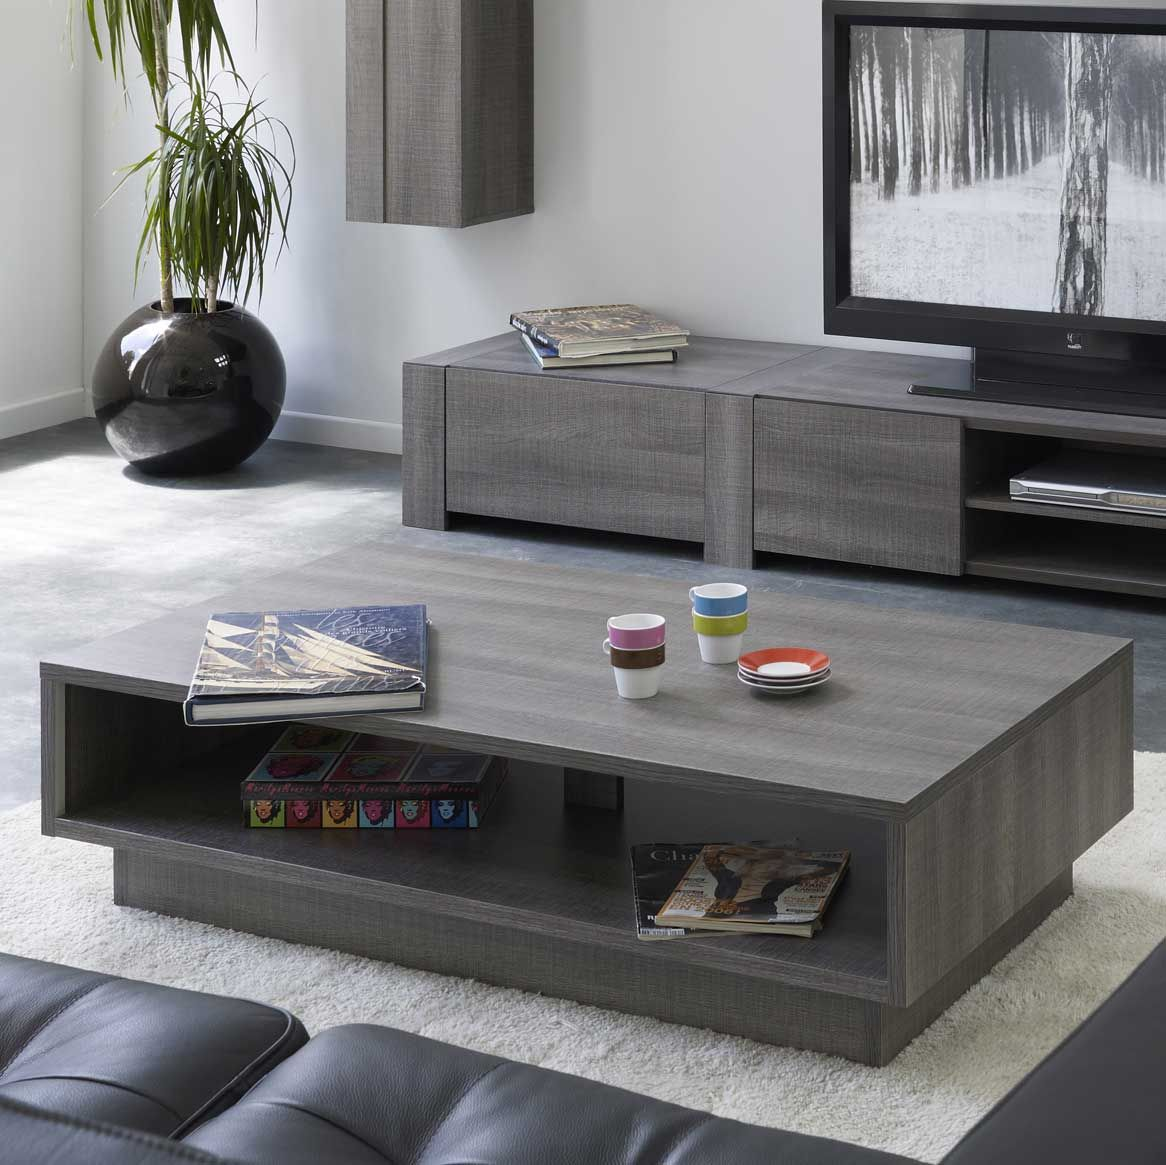 table basse rectangulaire en bois au salon. Black Bedroom Furniture Sets. Home Design Ideas